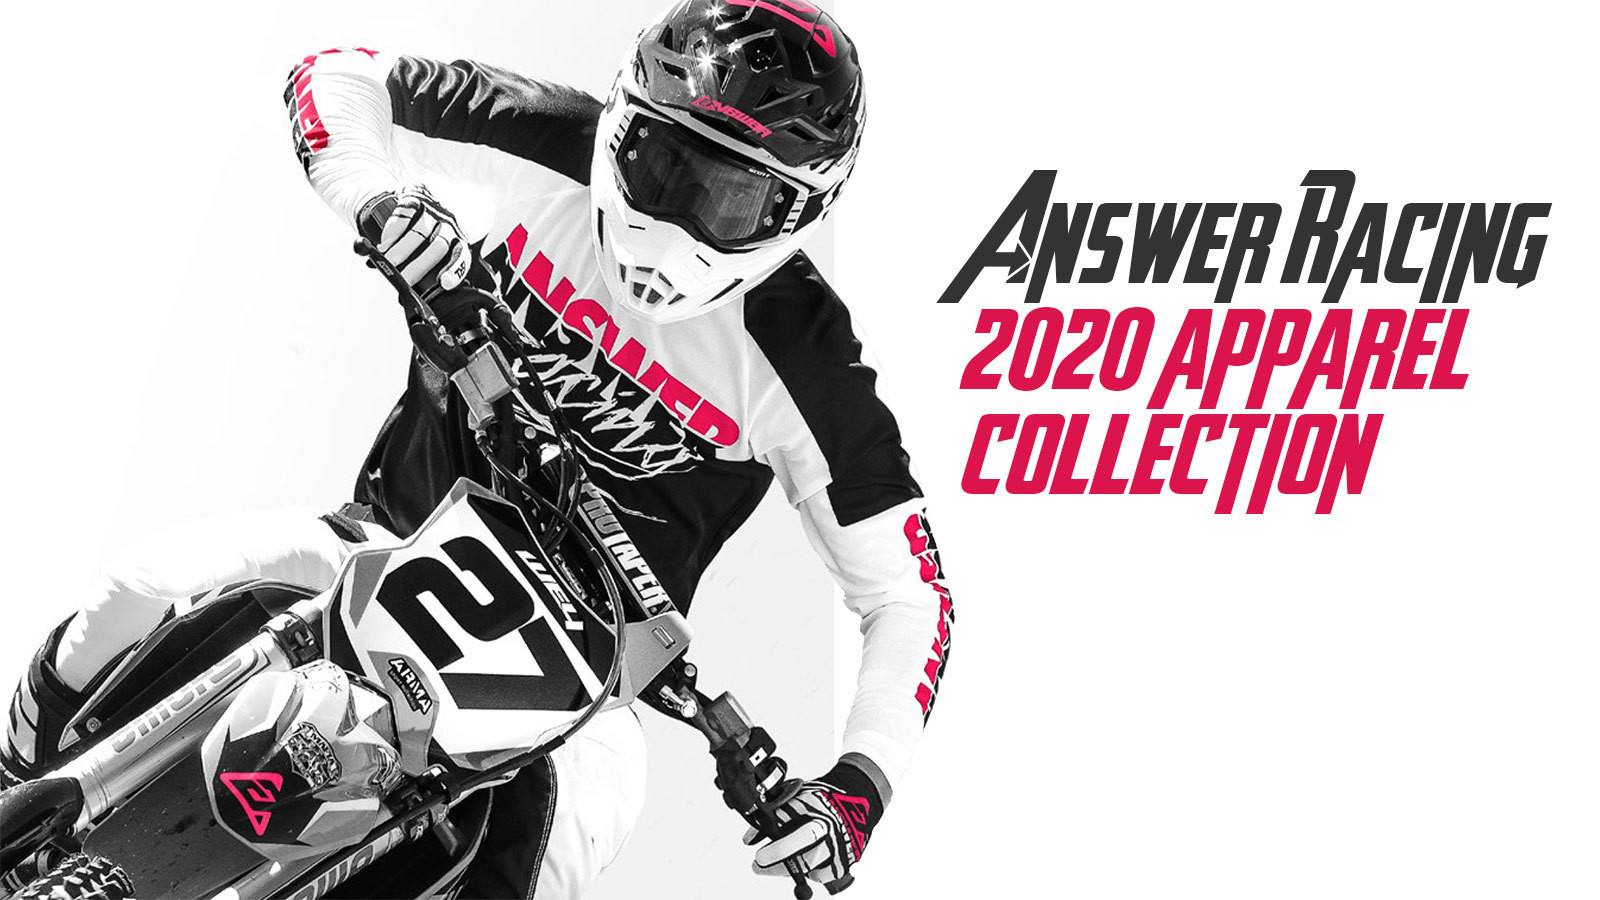 Answer Racing Launches 2020 Apparel Collection